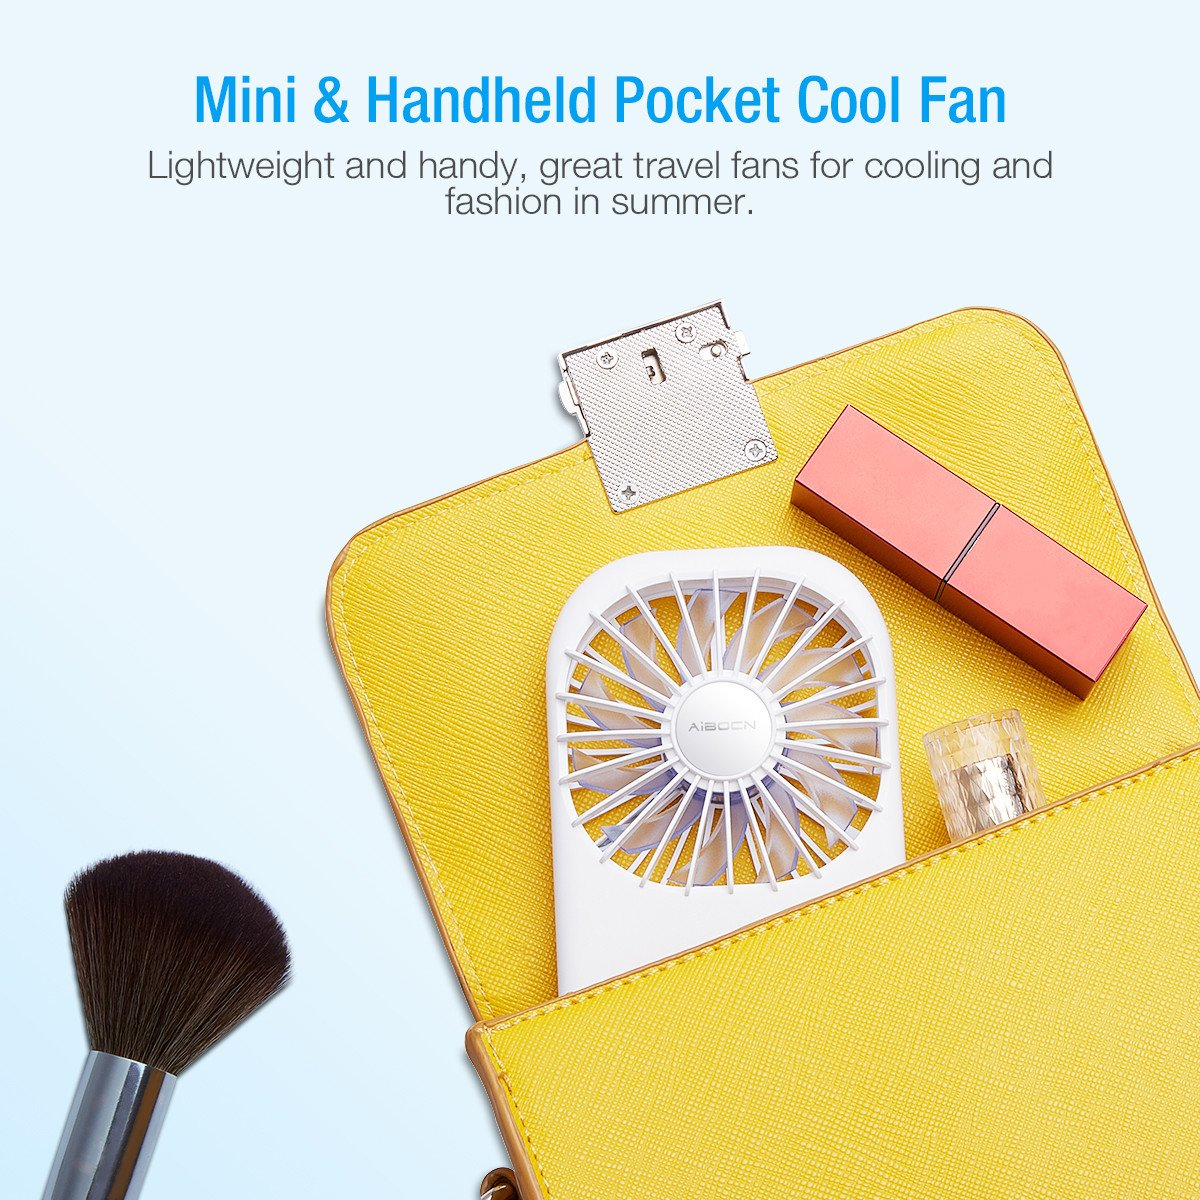 Aibocn Mini Handheld Fan with 3500mAh Rechargeable Power Bank Funtion Cooling Fan for Summer Travel, Camping and Outdoor by Aibocn (Image #5)